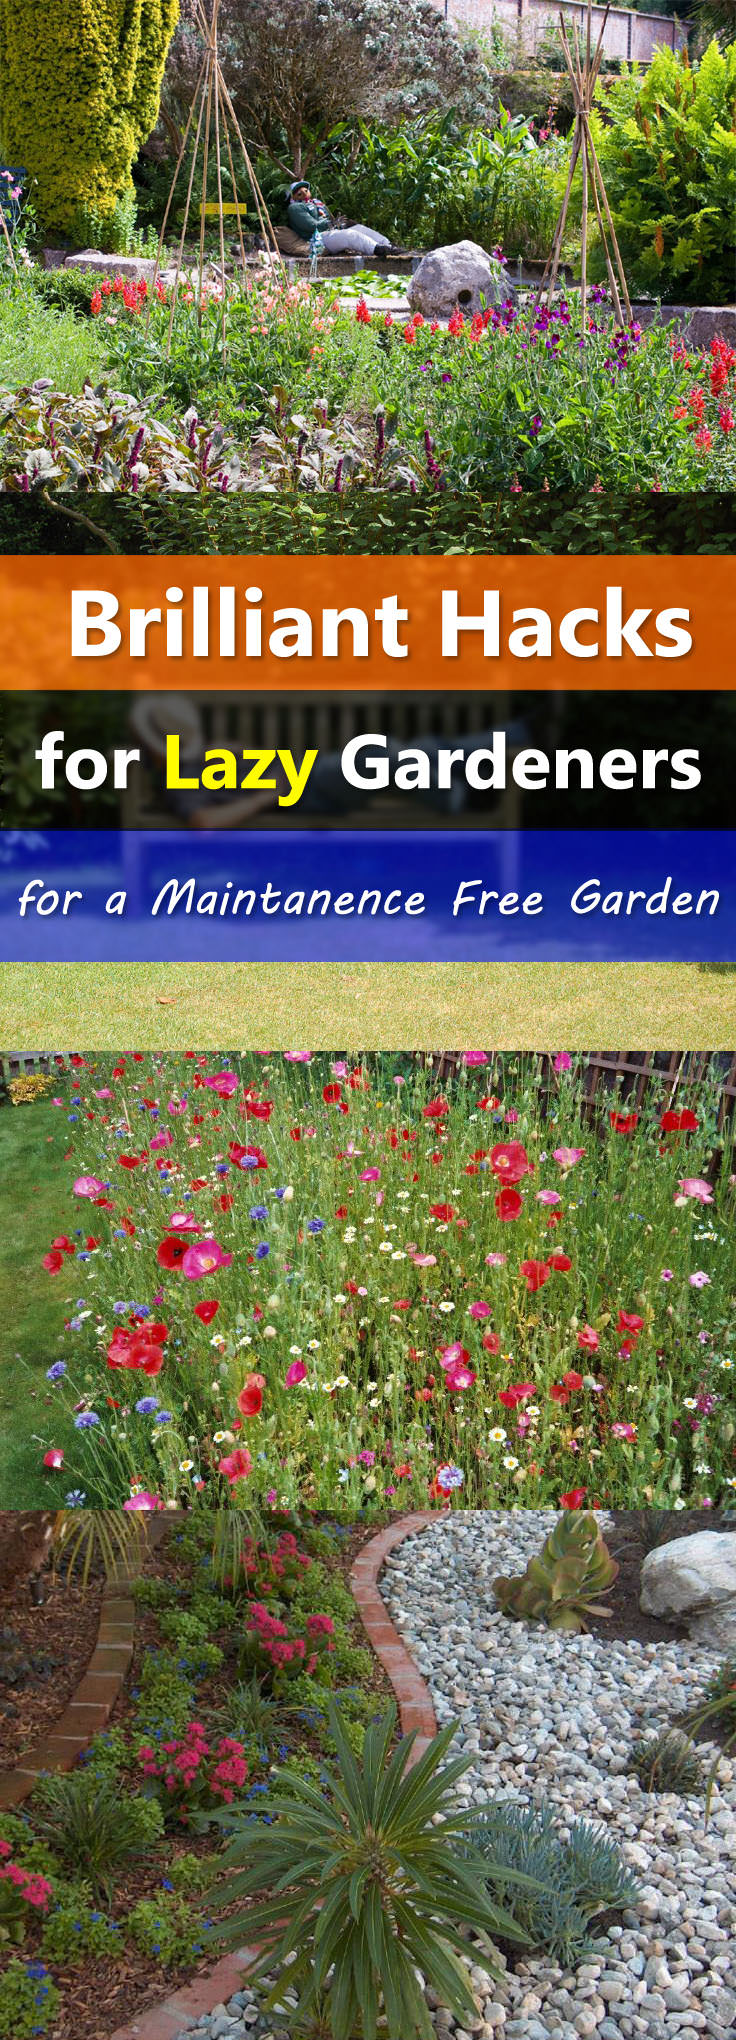 You love to garden but don't find time to maintain it. Don't bother, imply these easy landscaping tips to make a low maintenance garden.